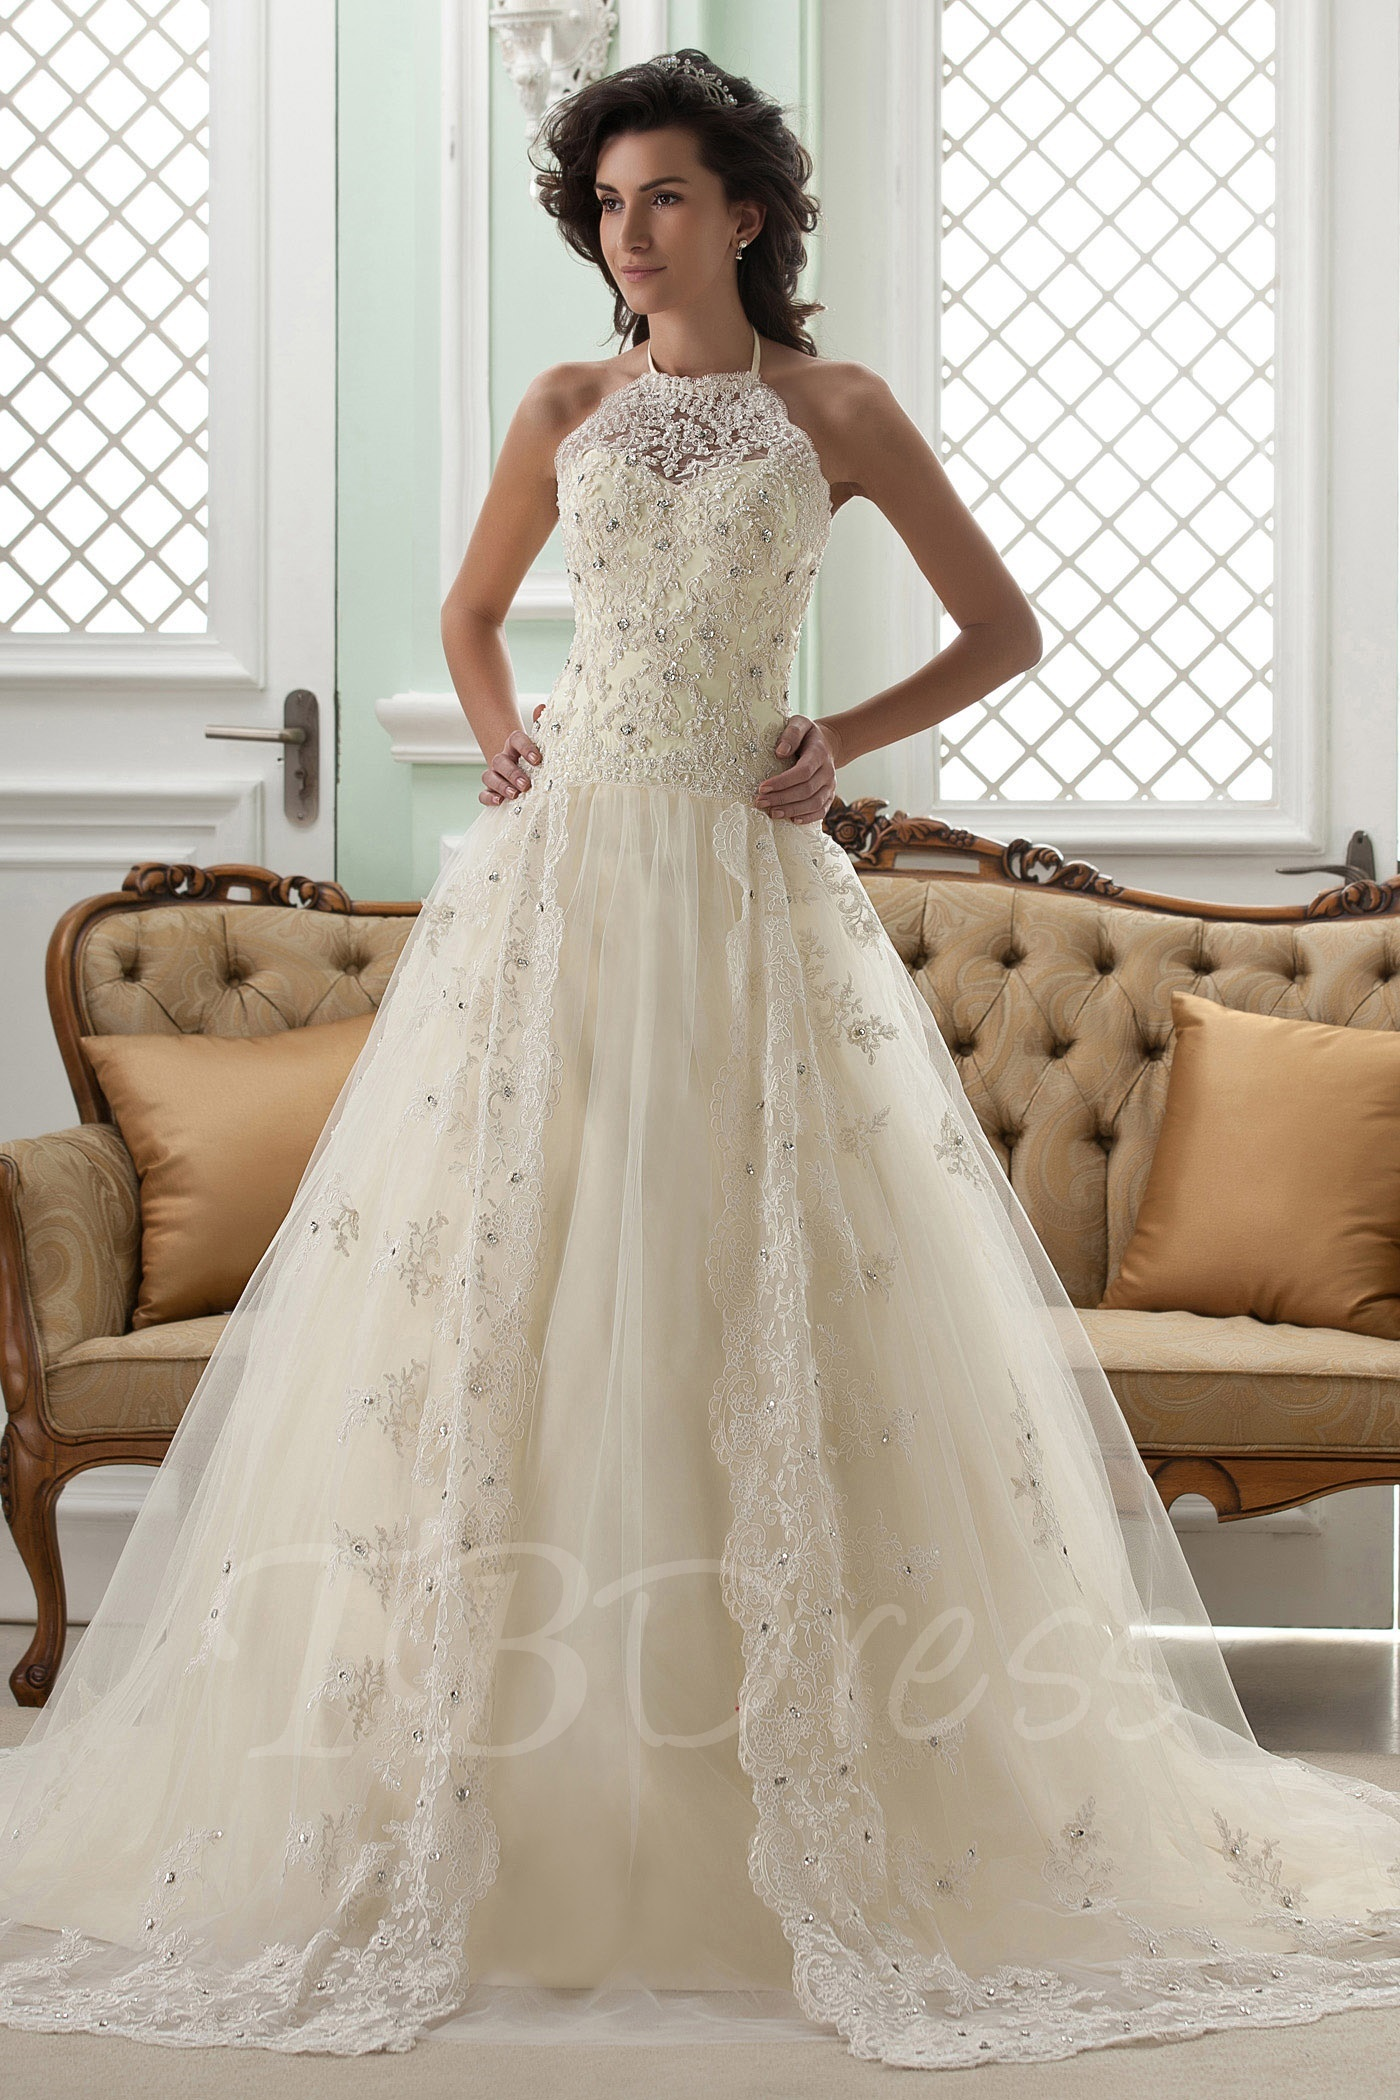 Lace wedding dress – All that you want to know – StyleSkier.com